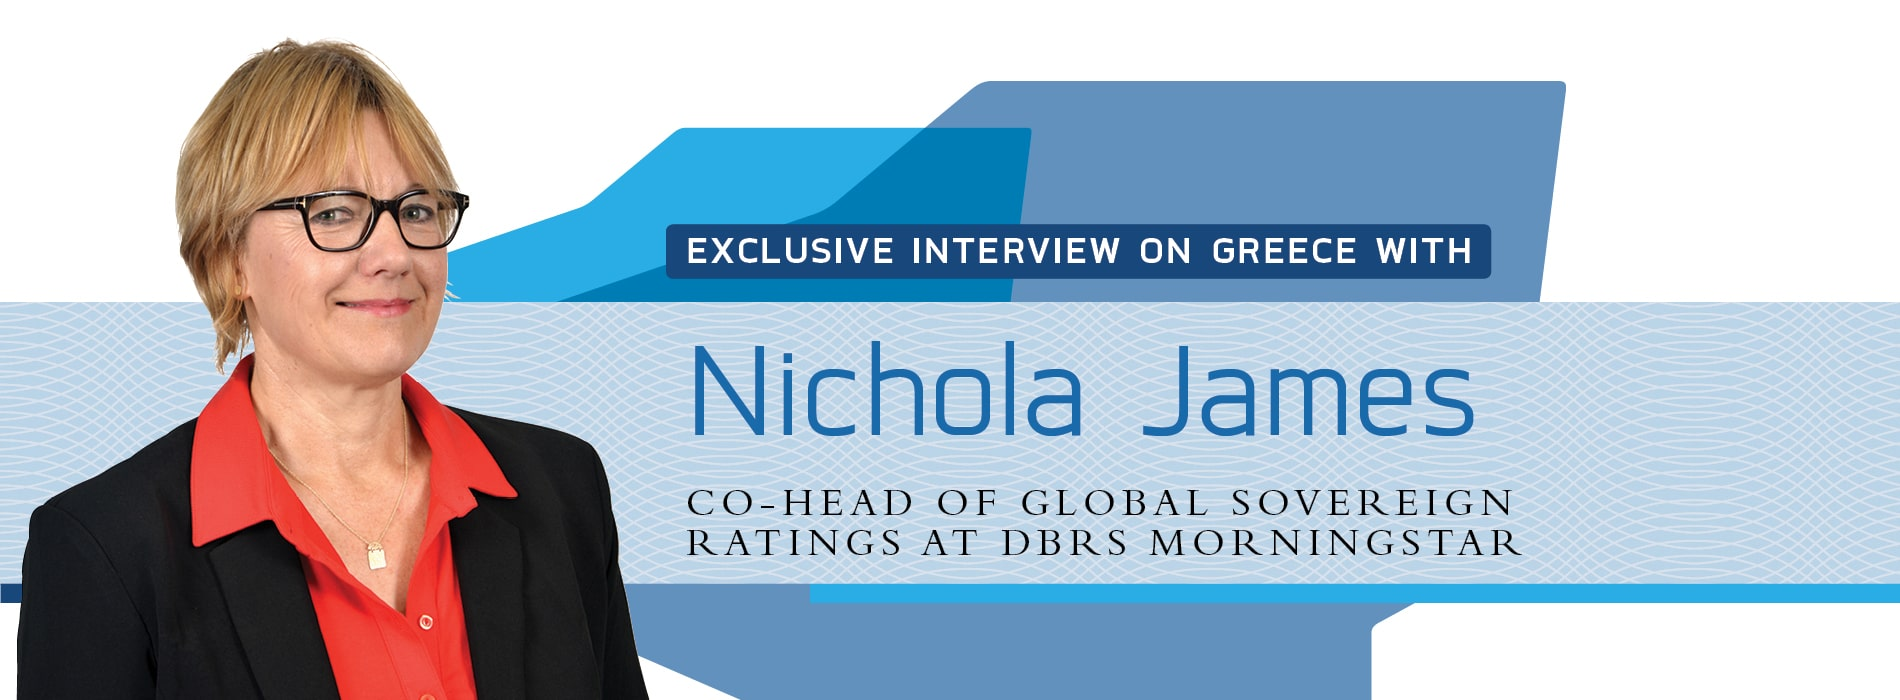 Interview on Greece with Nichola James from DBRS Morningstar